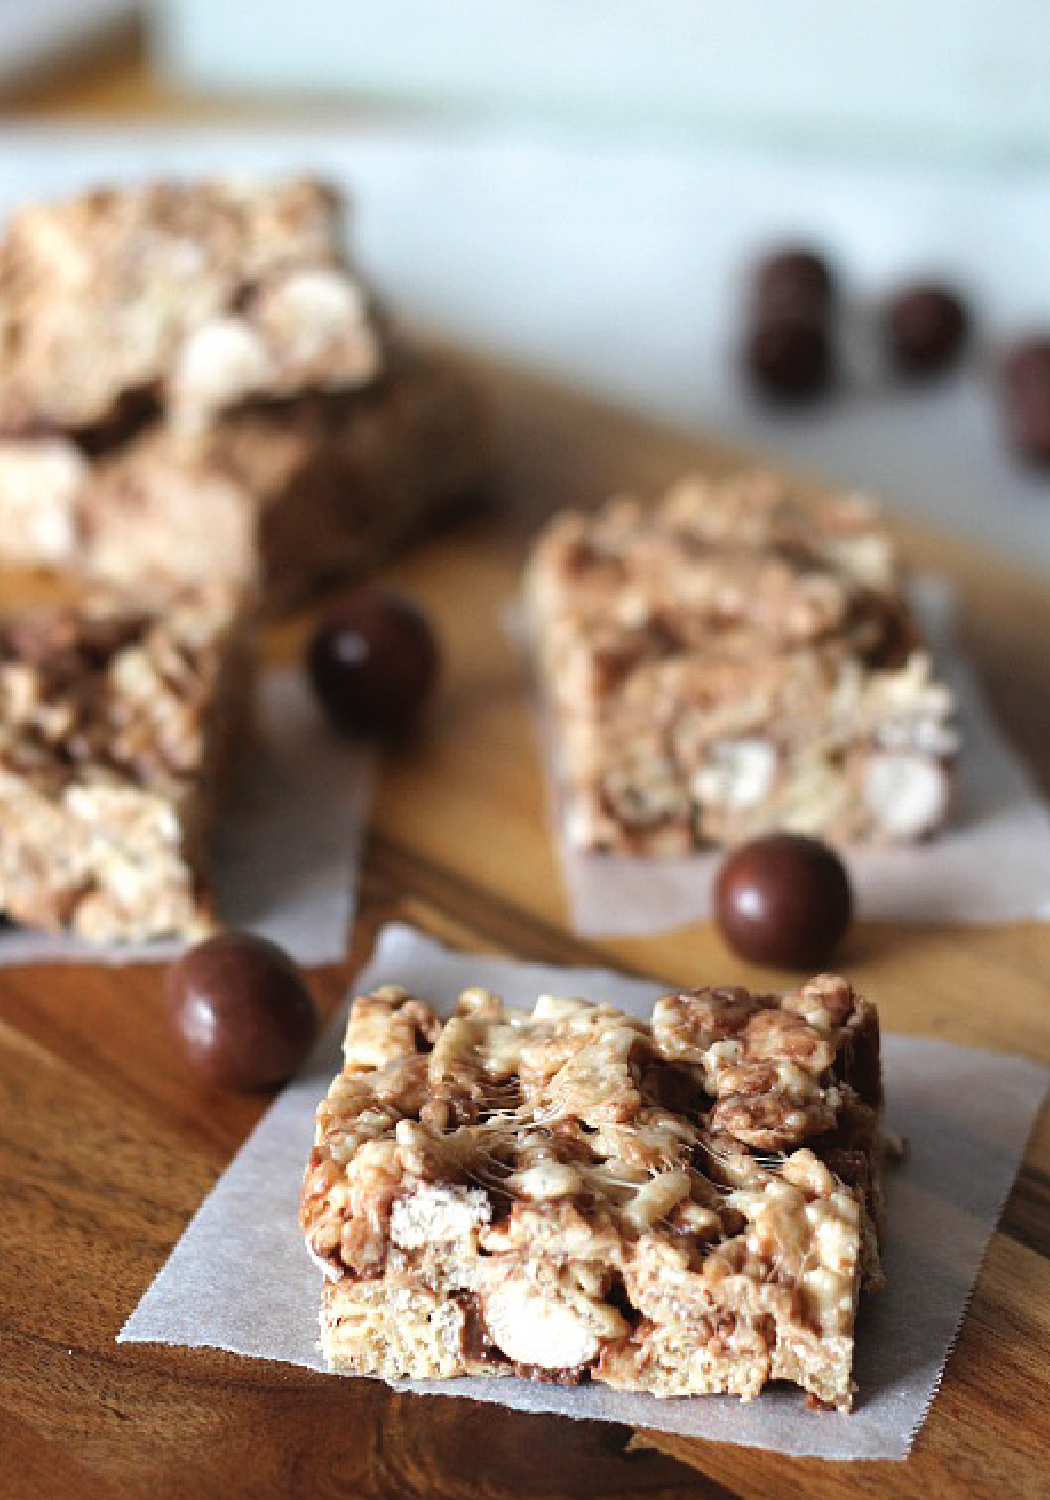 These crispy, ooey-gooey Malted Milk Ball Rice Krispies Treats® are a fun and festive twist on classic dessert! Check out the full recipe to enjoy this yummy chocolate, marshmallow, and candy flavor combination for your family.